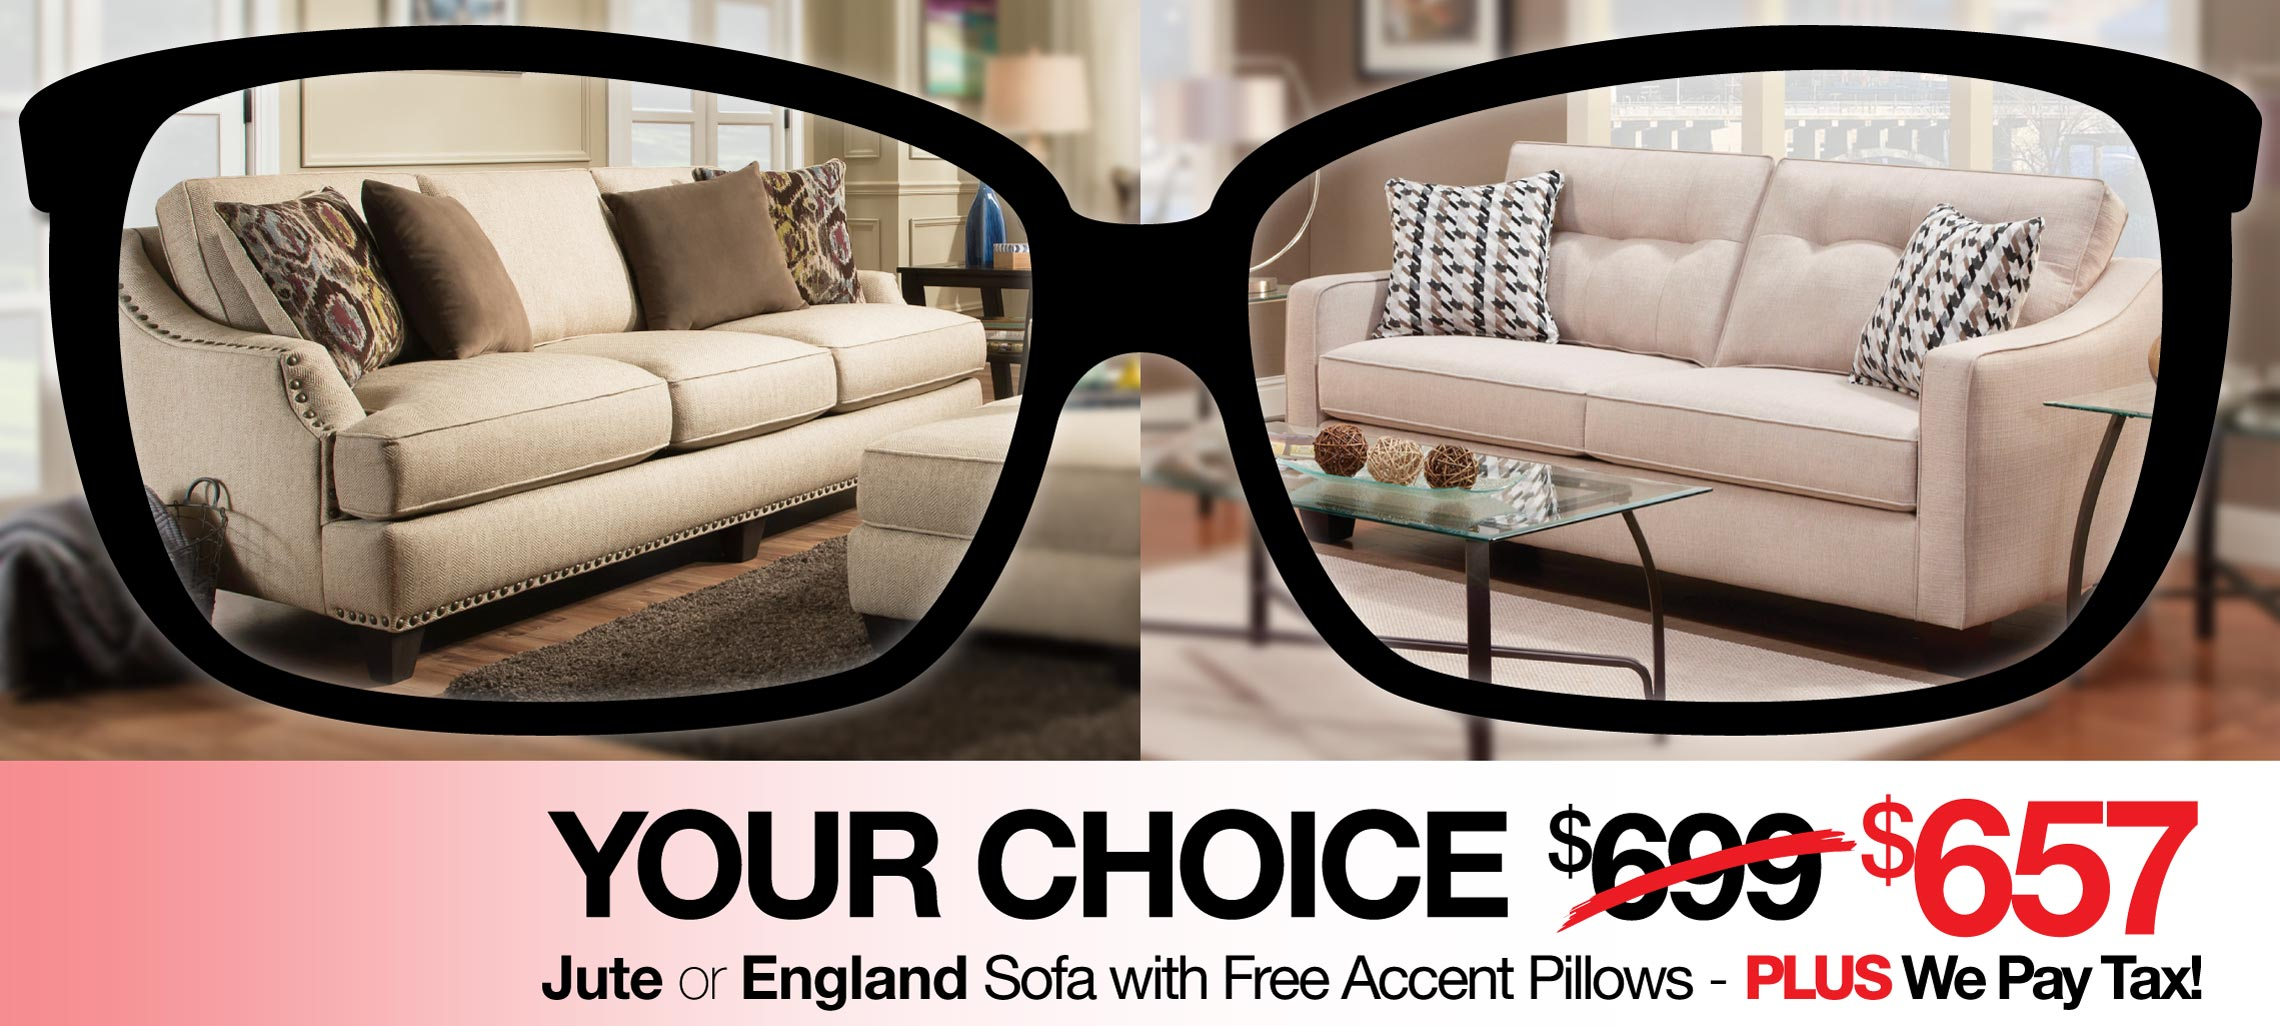 Your Choice - Jute or England